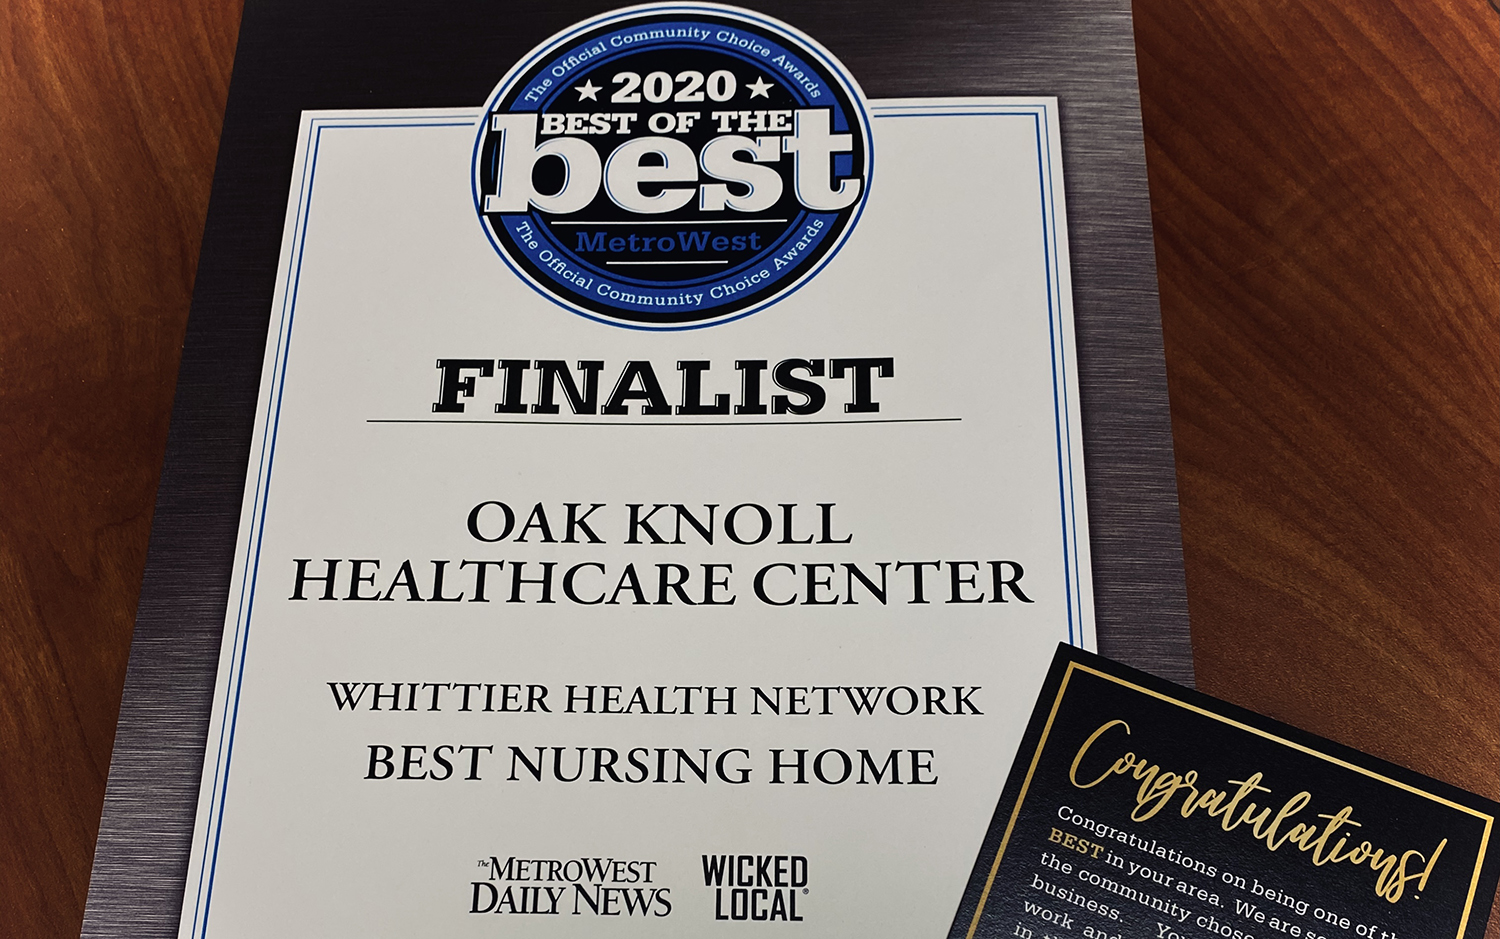 Whittier Health Network Spotlight: Oak Knoll Healthcare Center in Framingham, MA